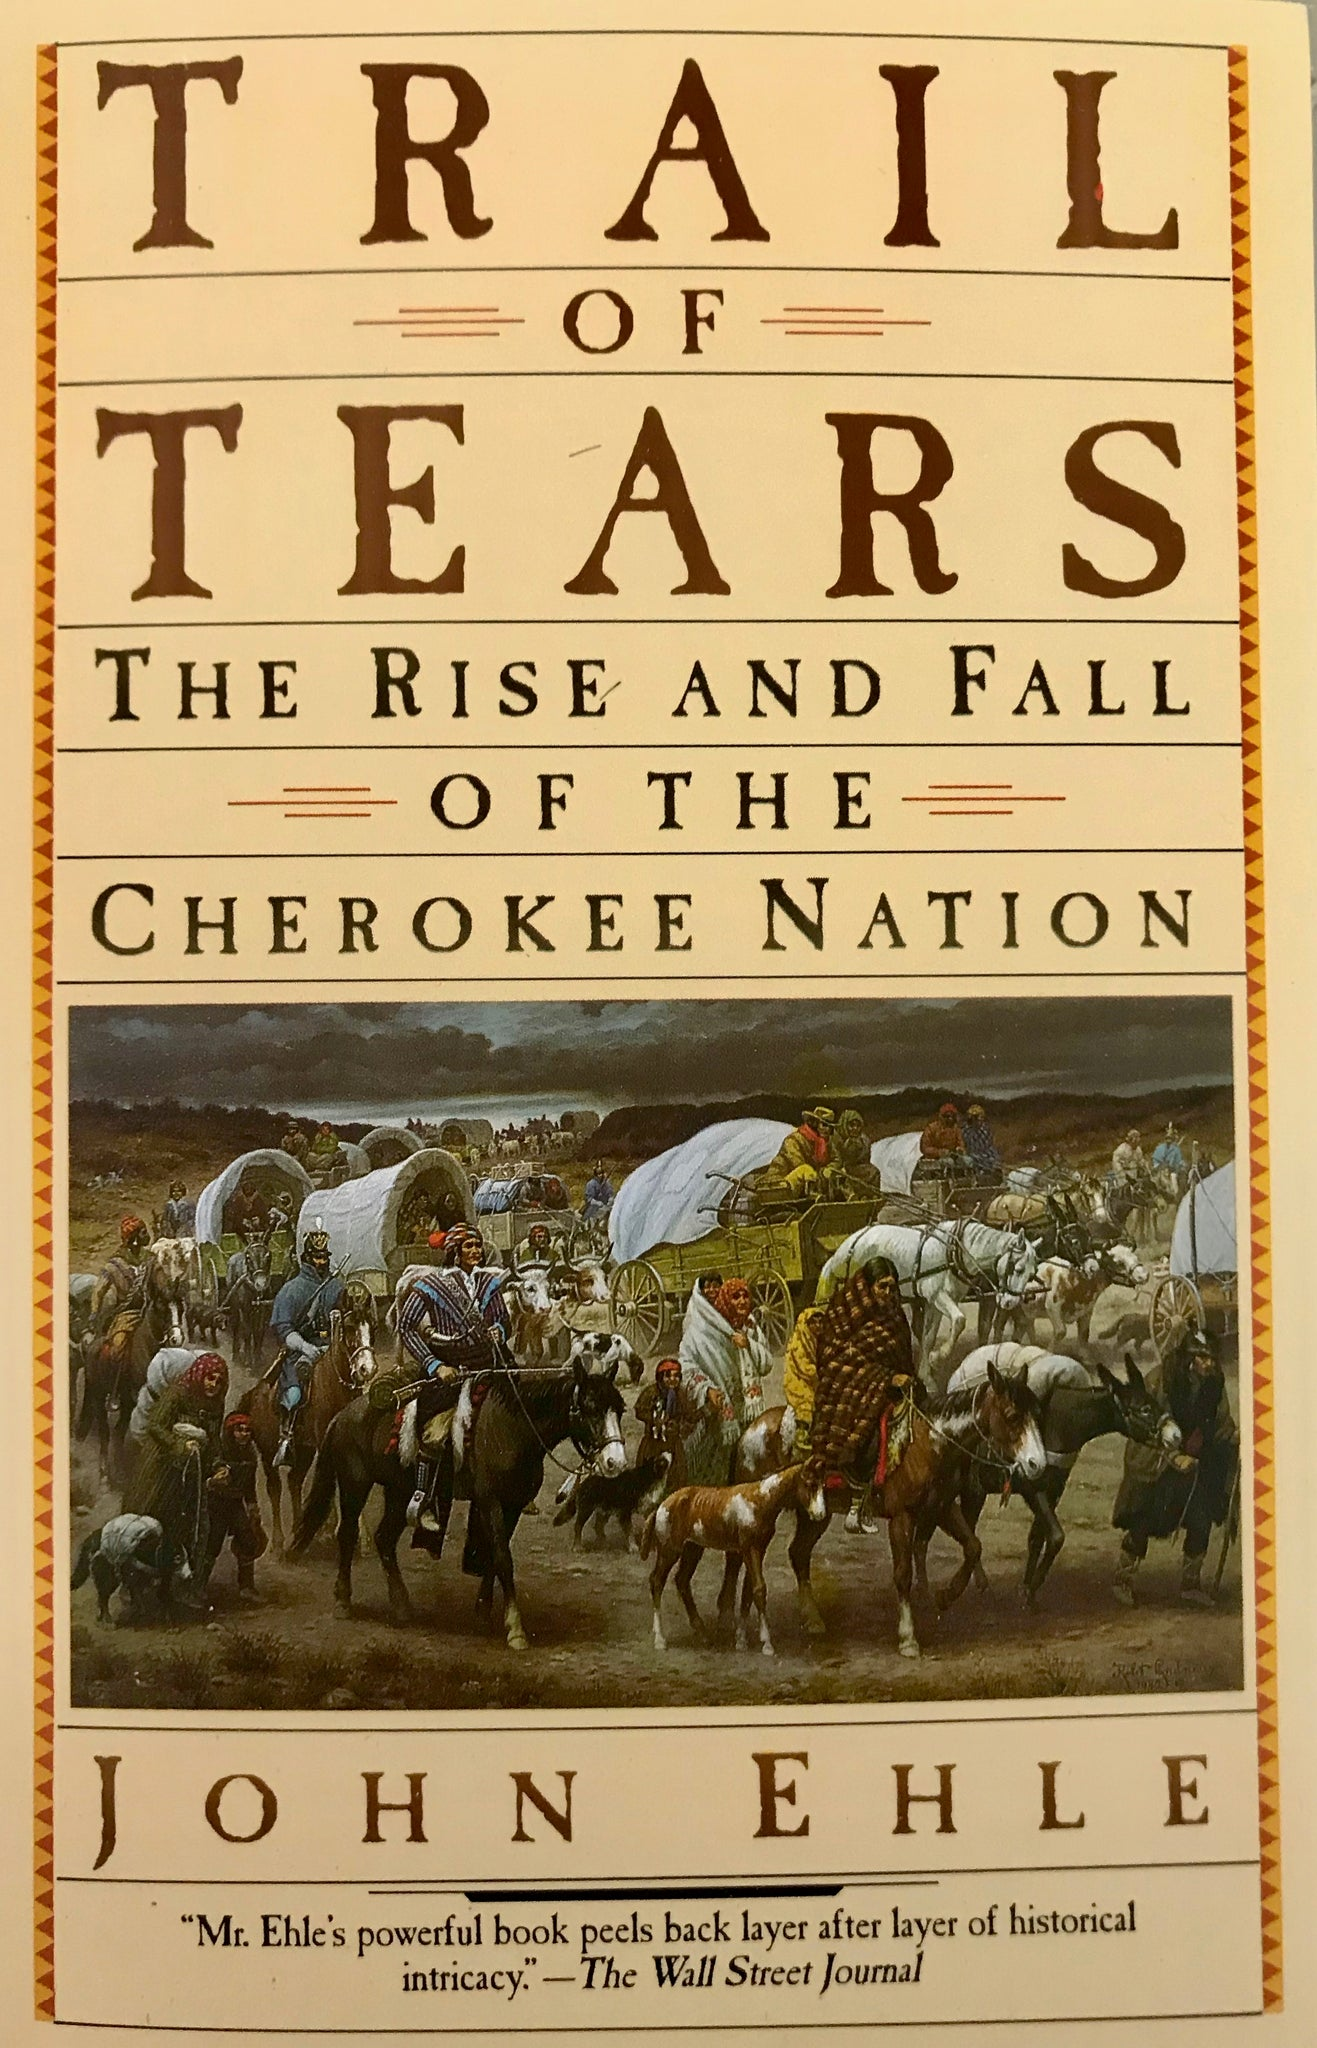 Trail of Tears - The Rise and Fall of the Cherokee Nation